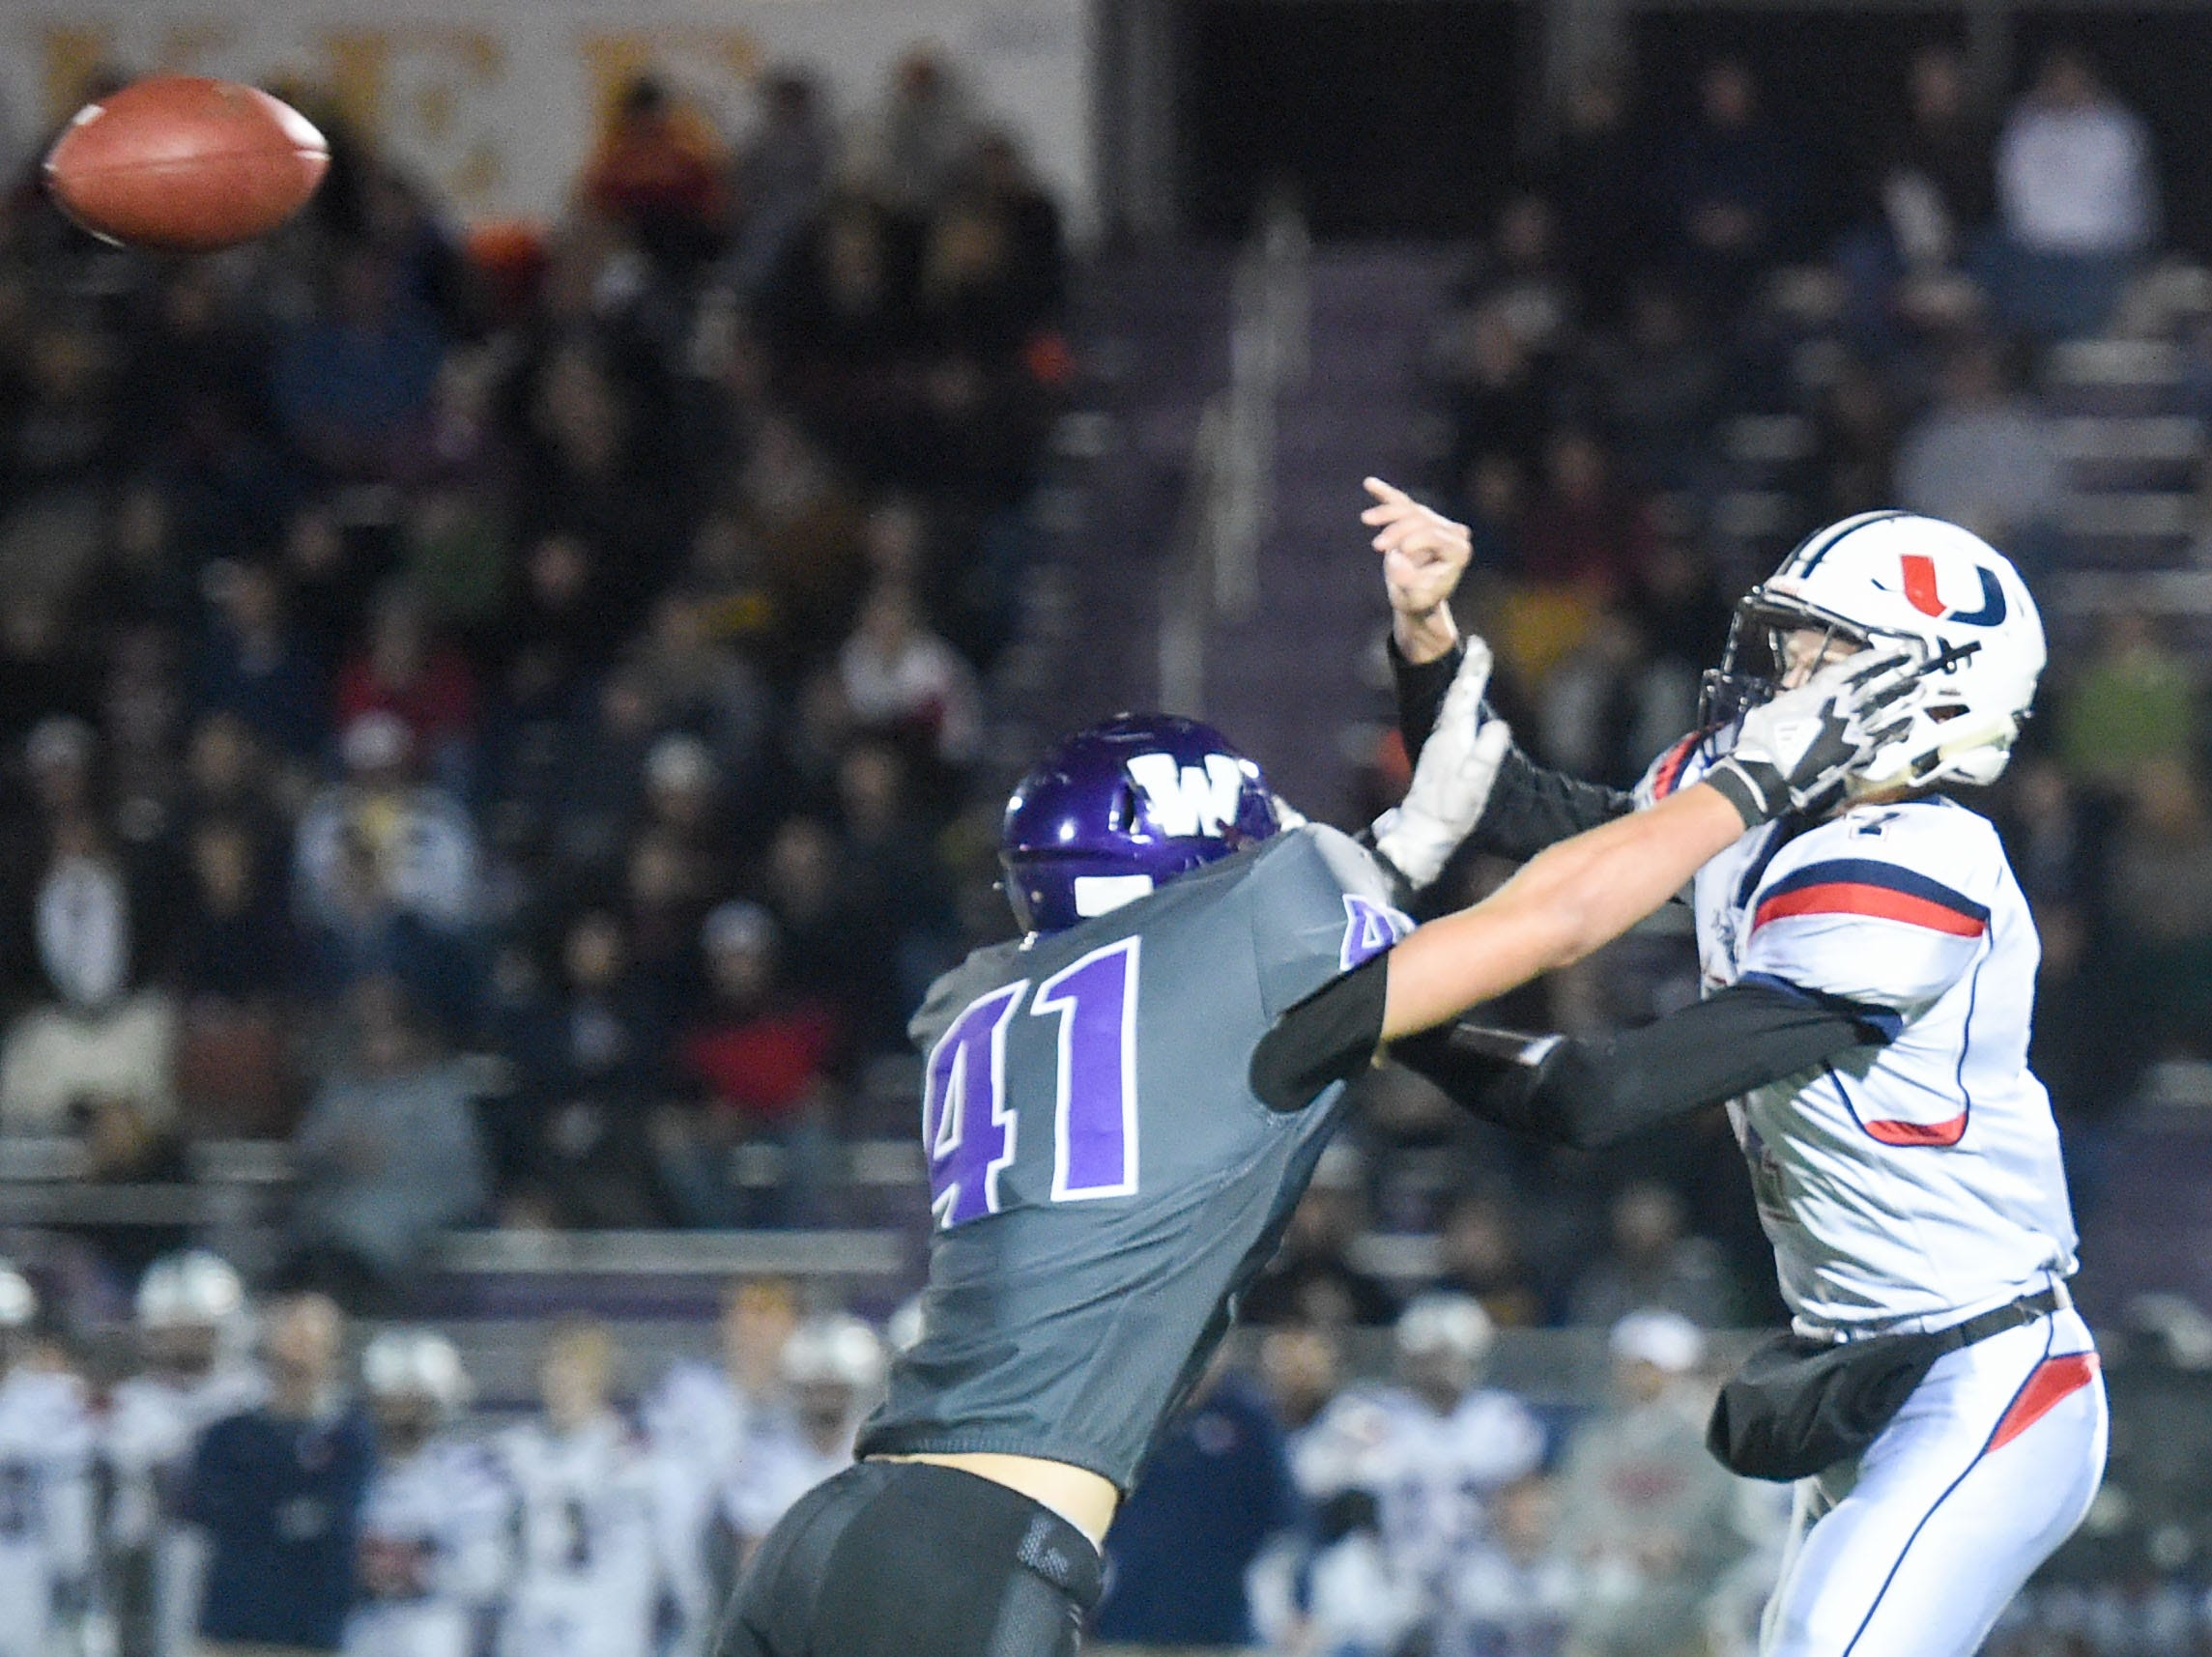 Urbandale quarterback Ty Langenberg (7) makes a quick pass while under pressure from Waukee's Cole Spyksma (41) on Friday, Oct. 26, 2018 during a playoff game between the Waukee Warriors and the Urbandale J-Hawks at Waukee High School.